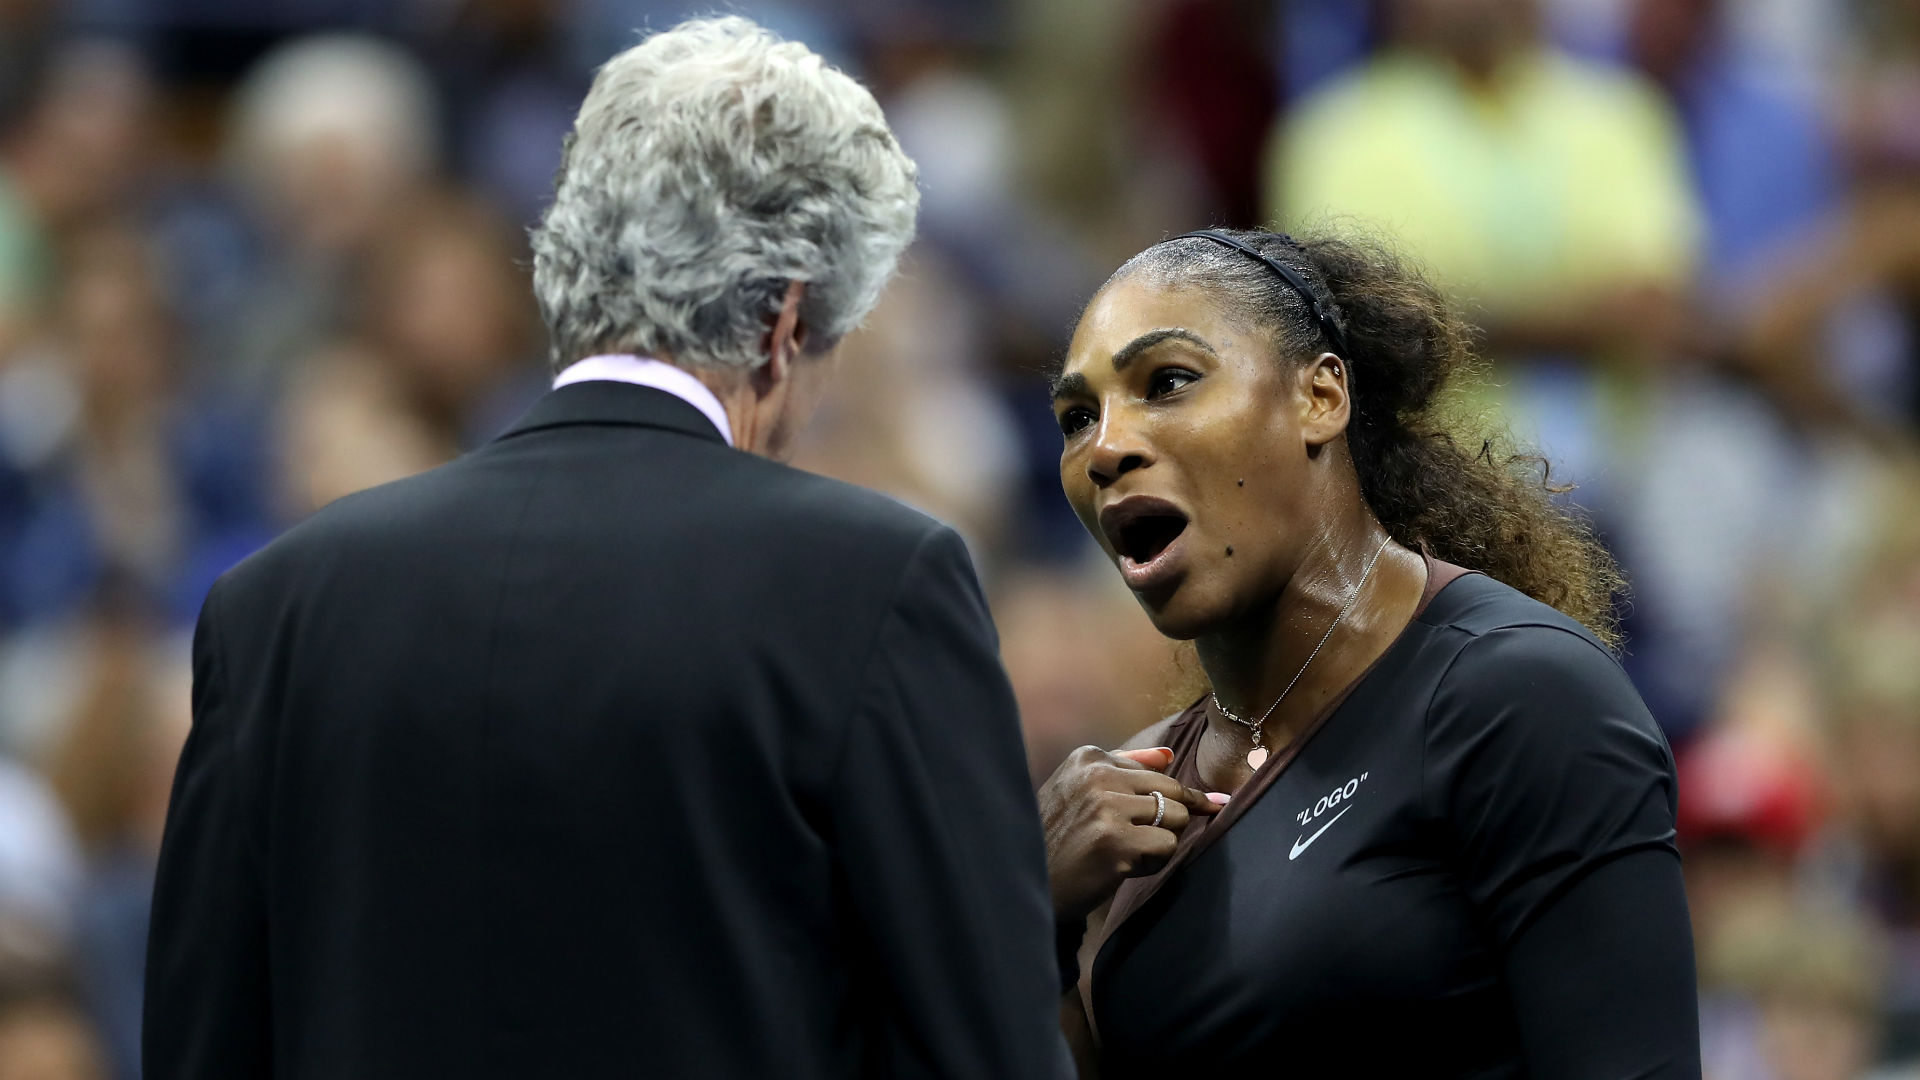 Jamie Murray: Serena US Open sexism claims far-fetched